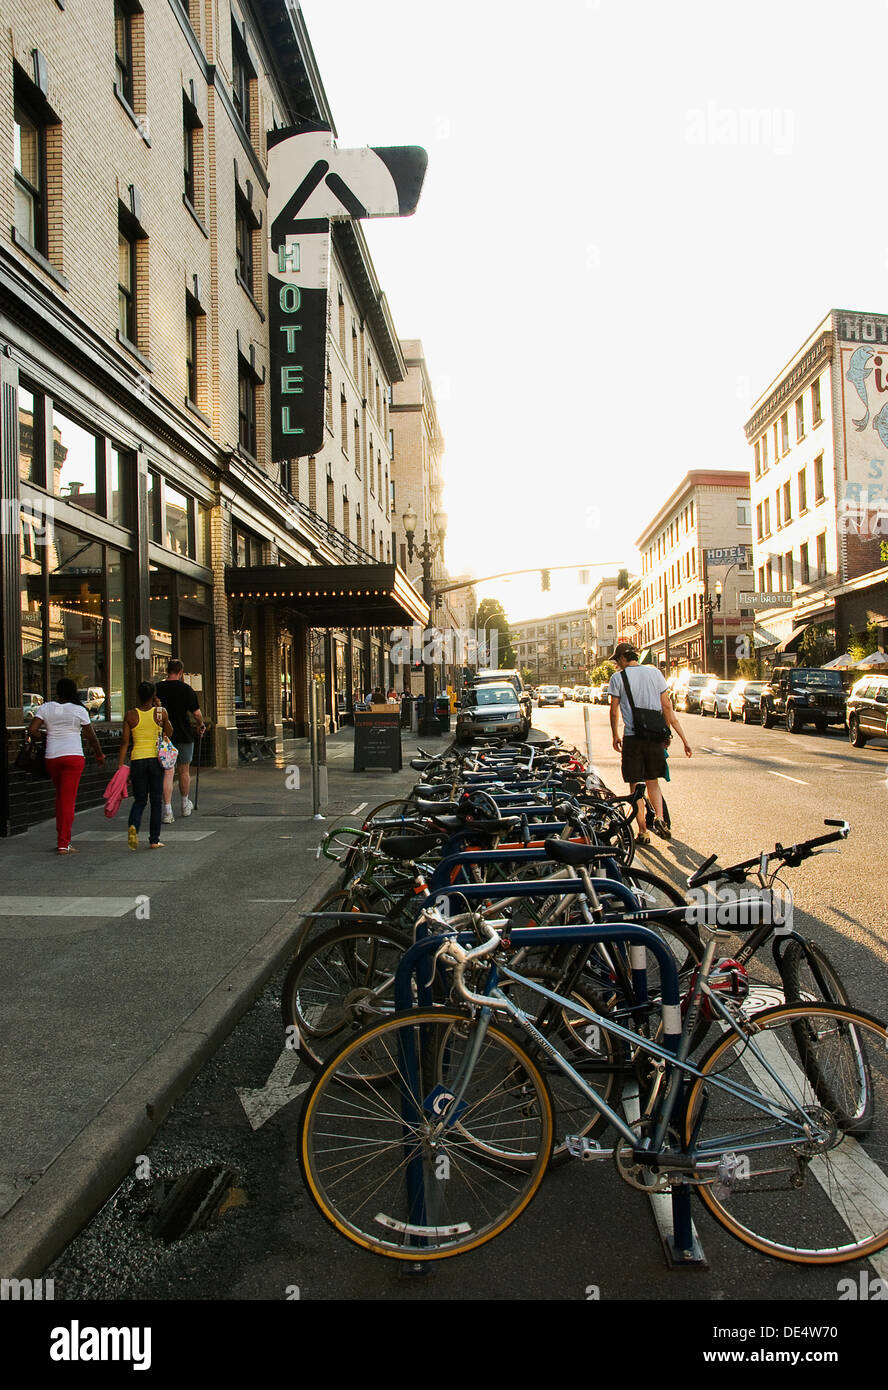 Looking west on Stark Street in Portland, Oregon at the Ace Hotel. - Stock Image